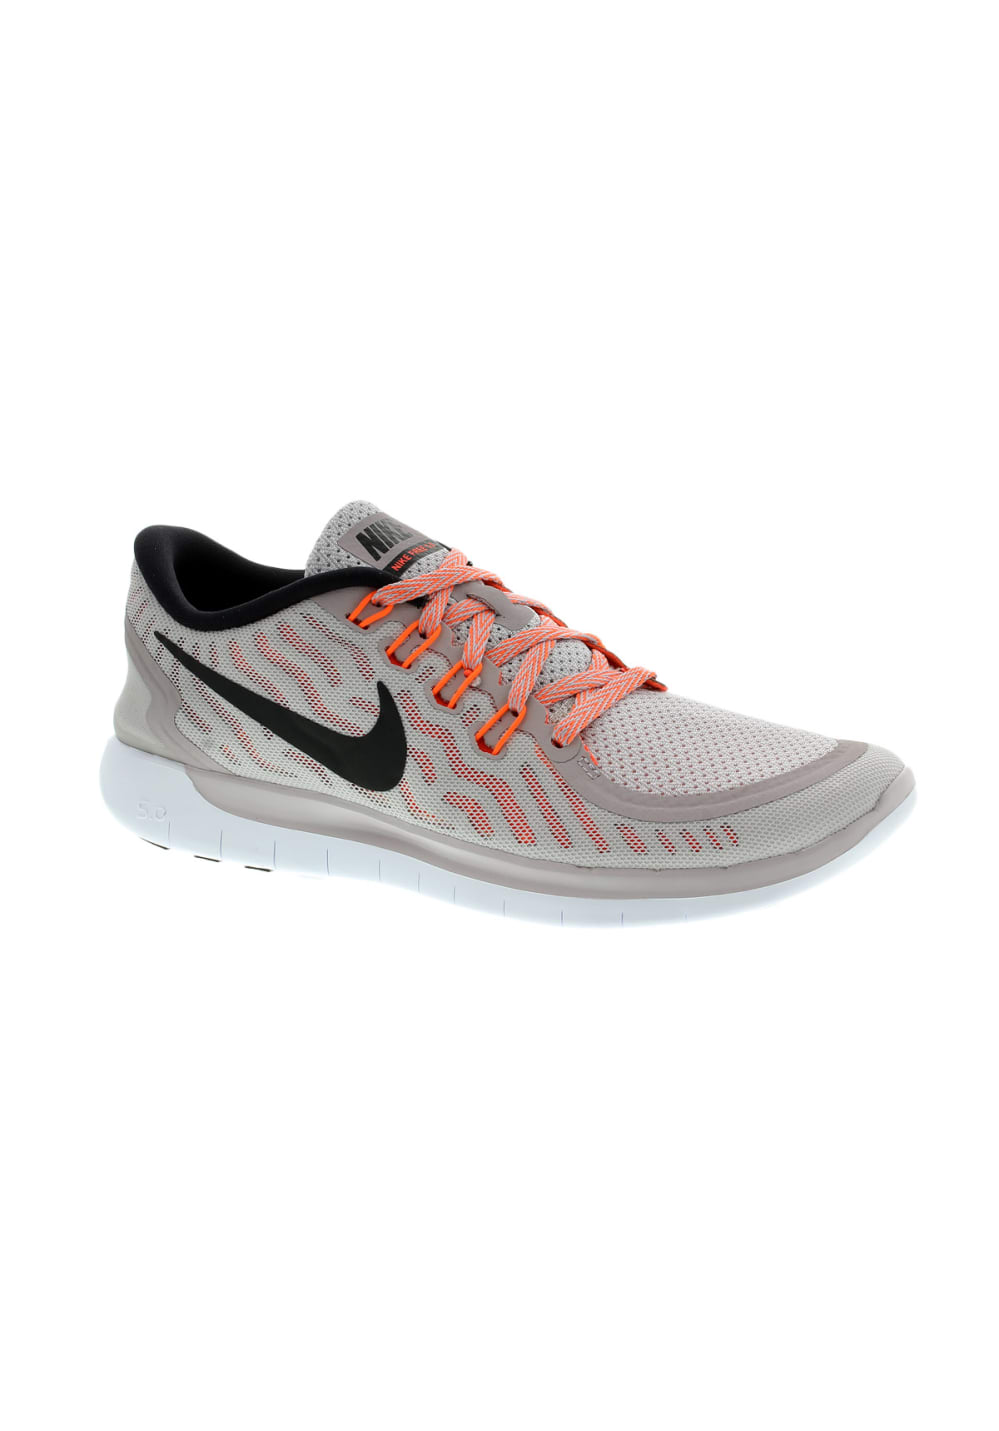 new arrival 67b93 b6bb2 Nike Free 5.0 - Running shoes for Women - Grey